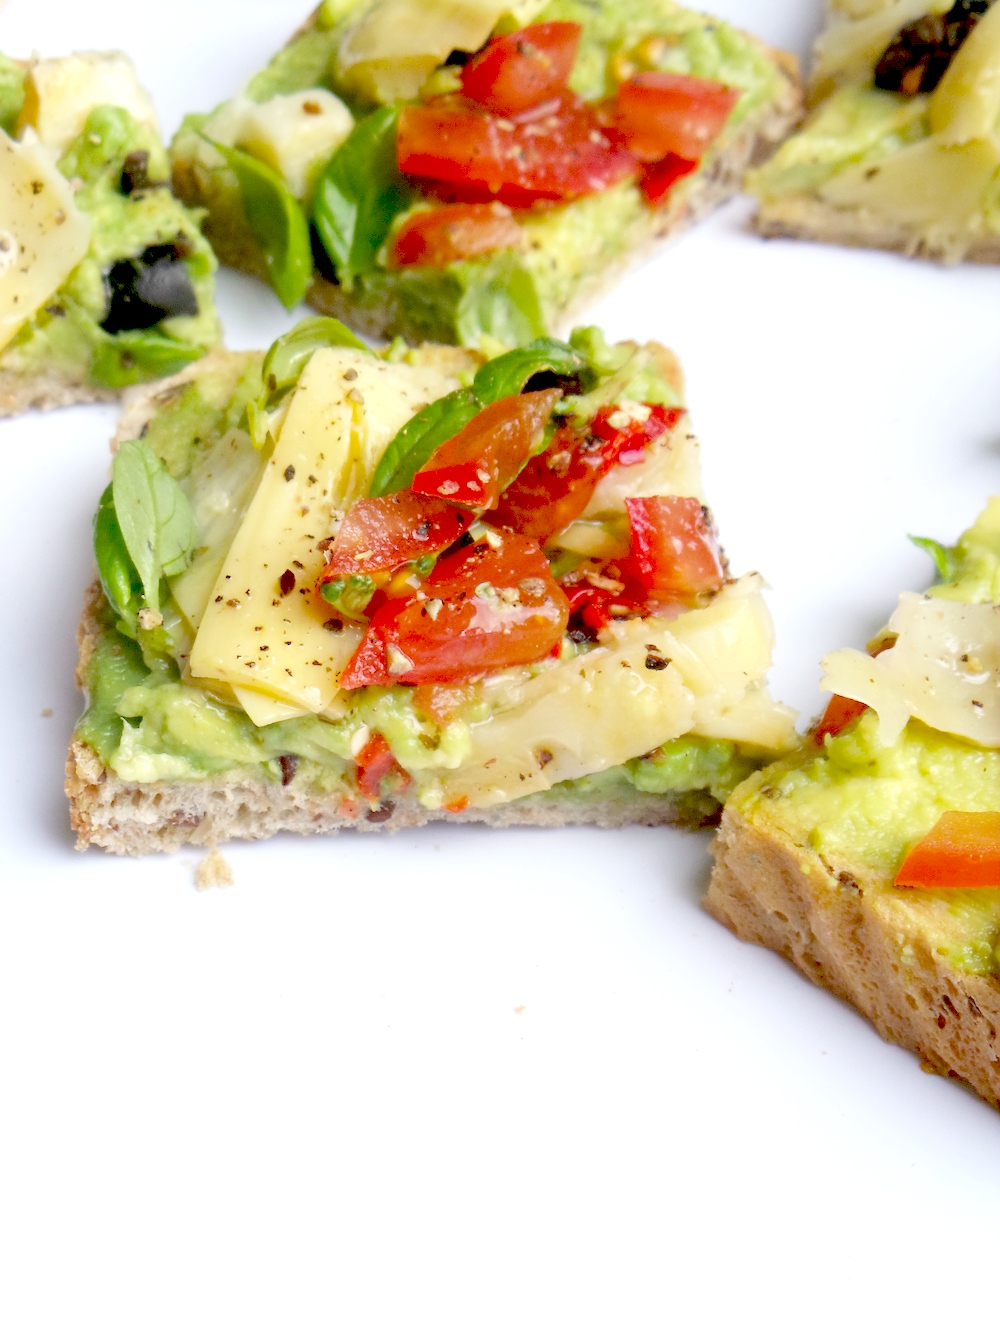 5-Minute avocado toast with vegetables - great breakfast idea that is vegan and healthy